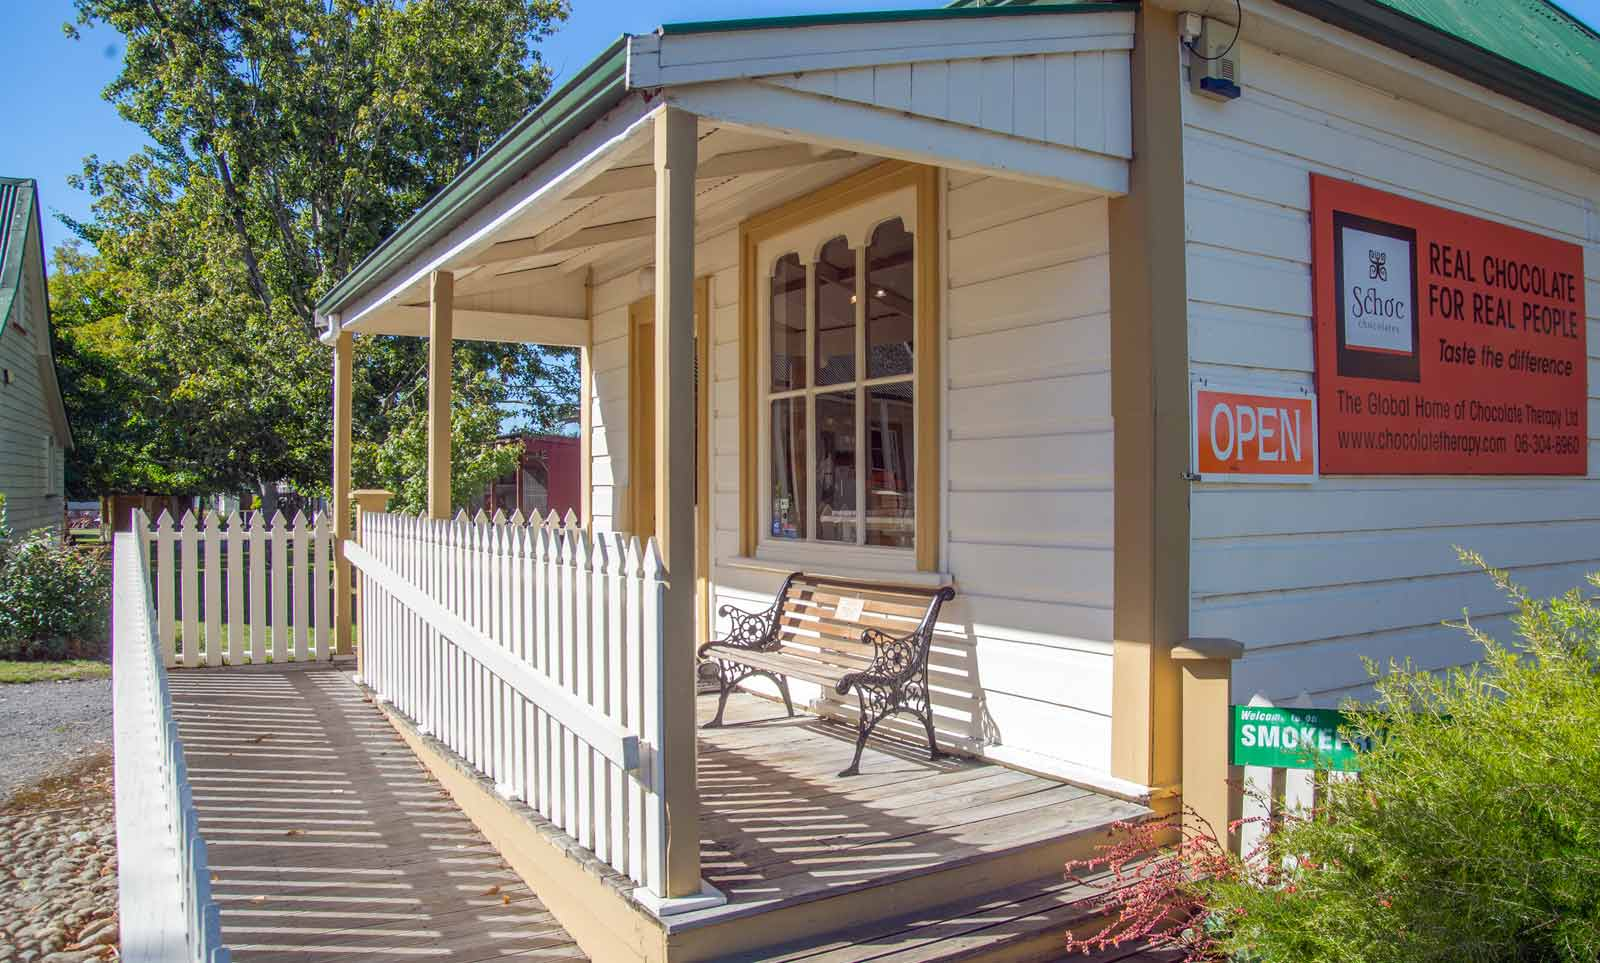 Schoc Shop in Greytown, Wairarapa